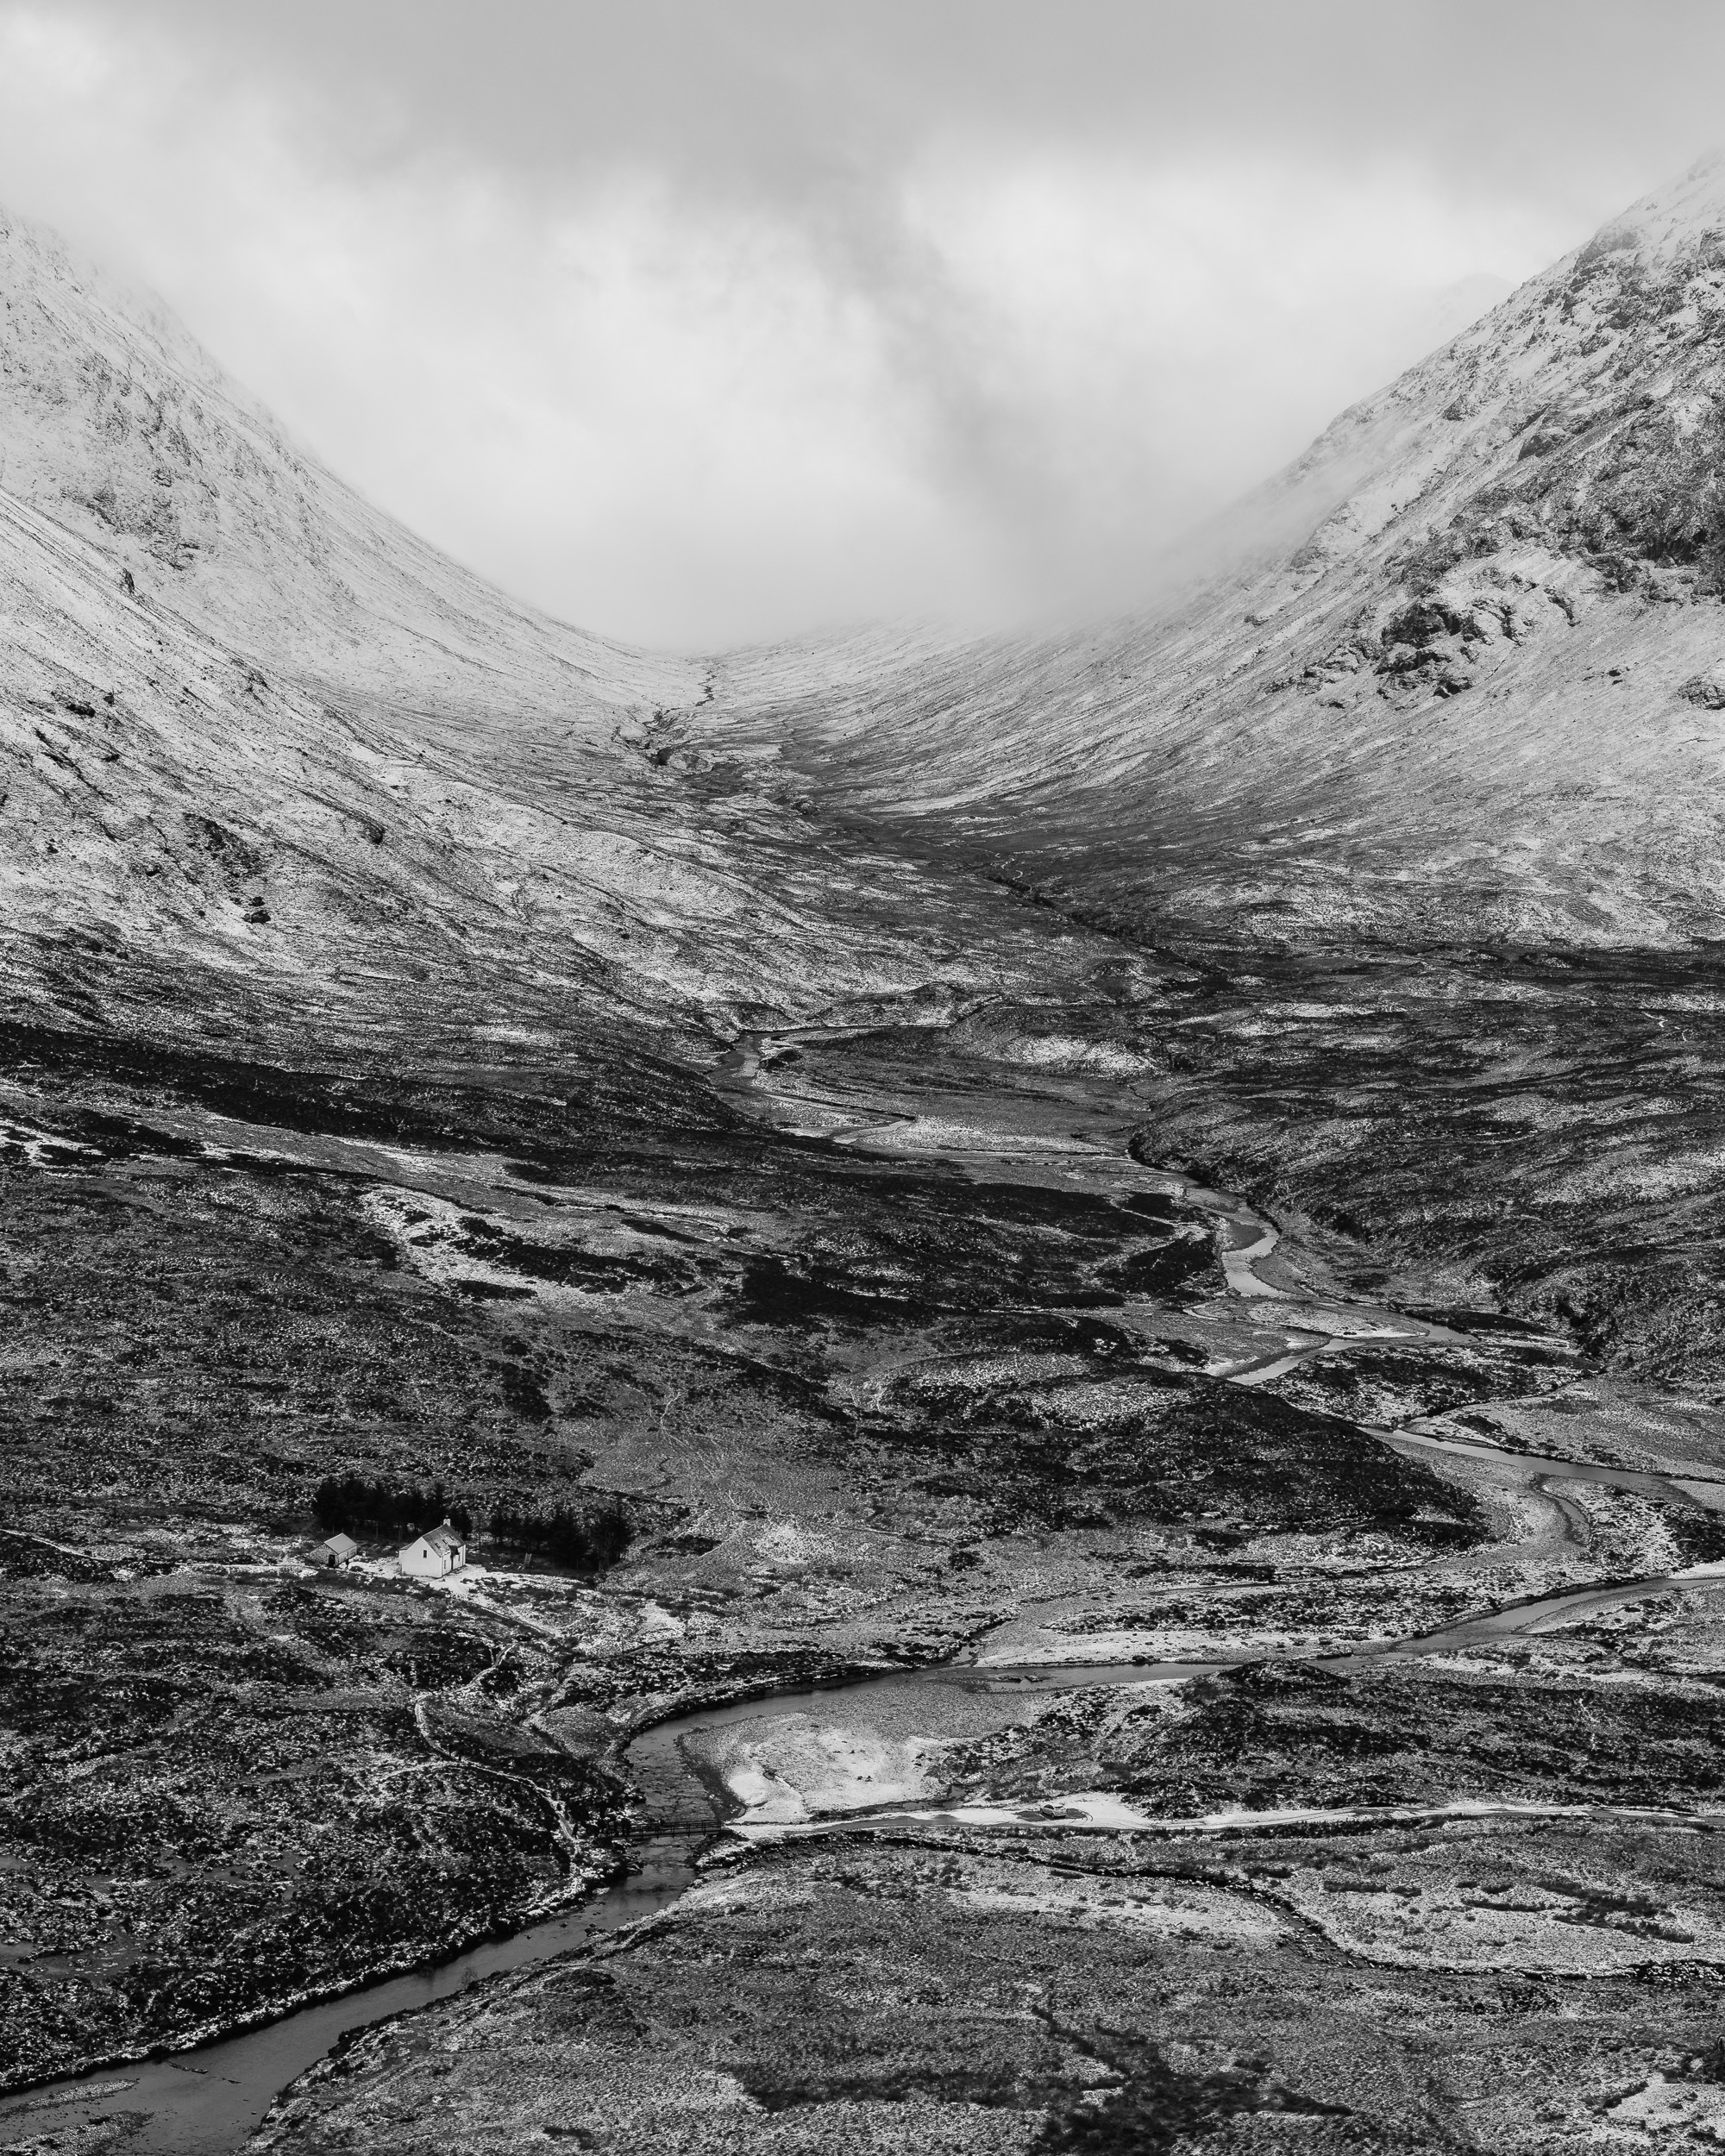 20170302-Lagangarbh Cottage and Lairig Gartain.jpg